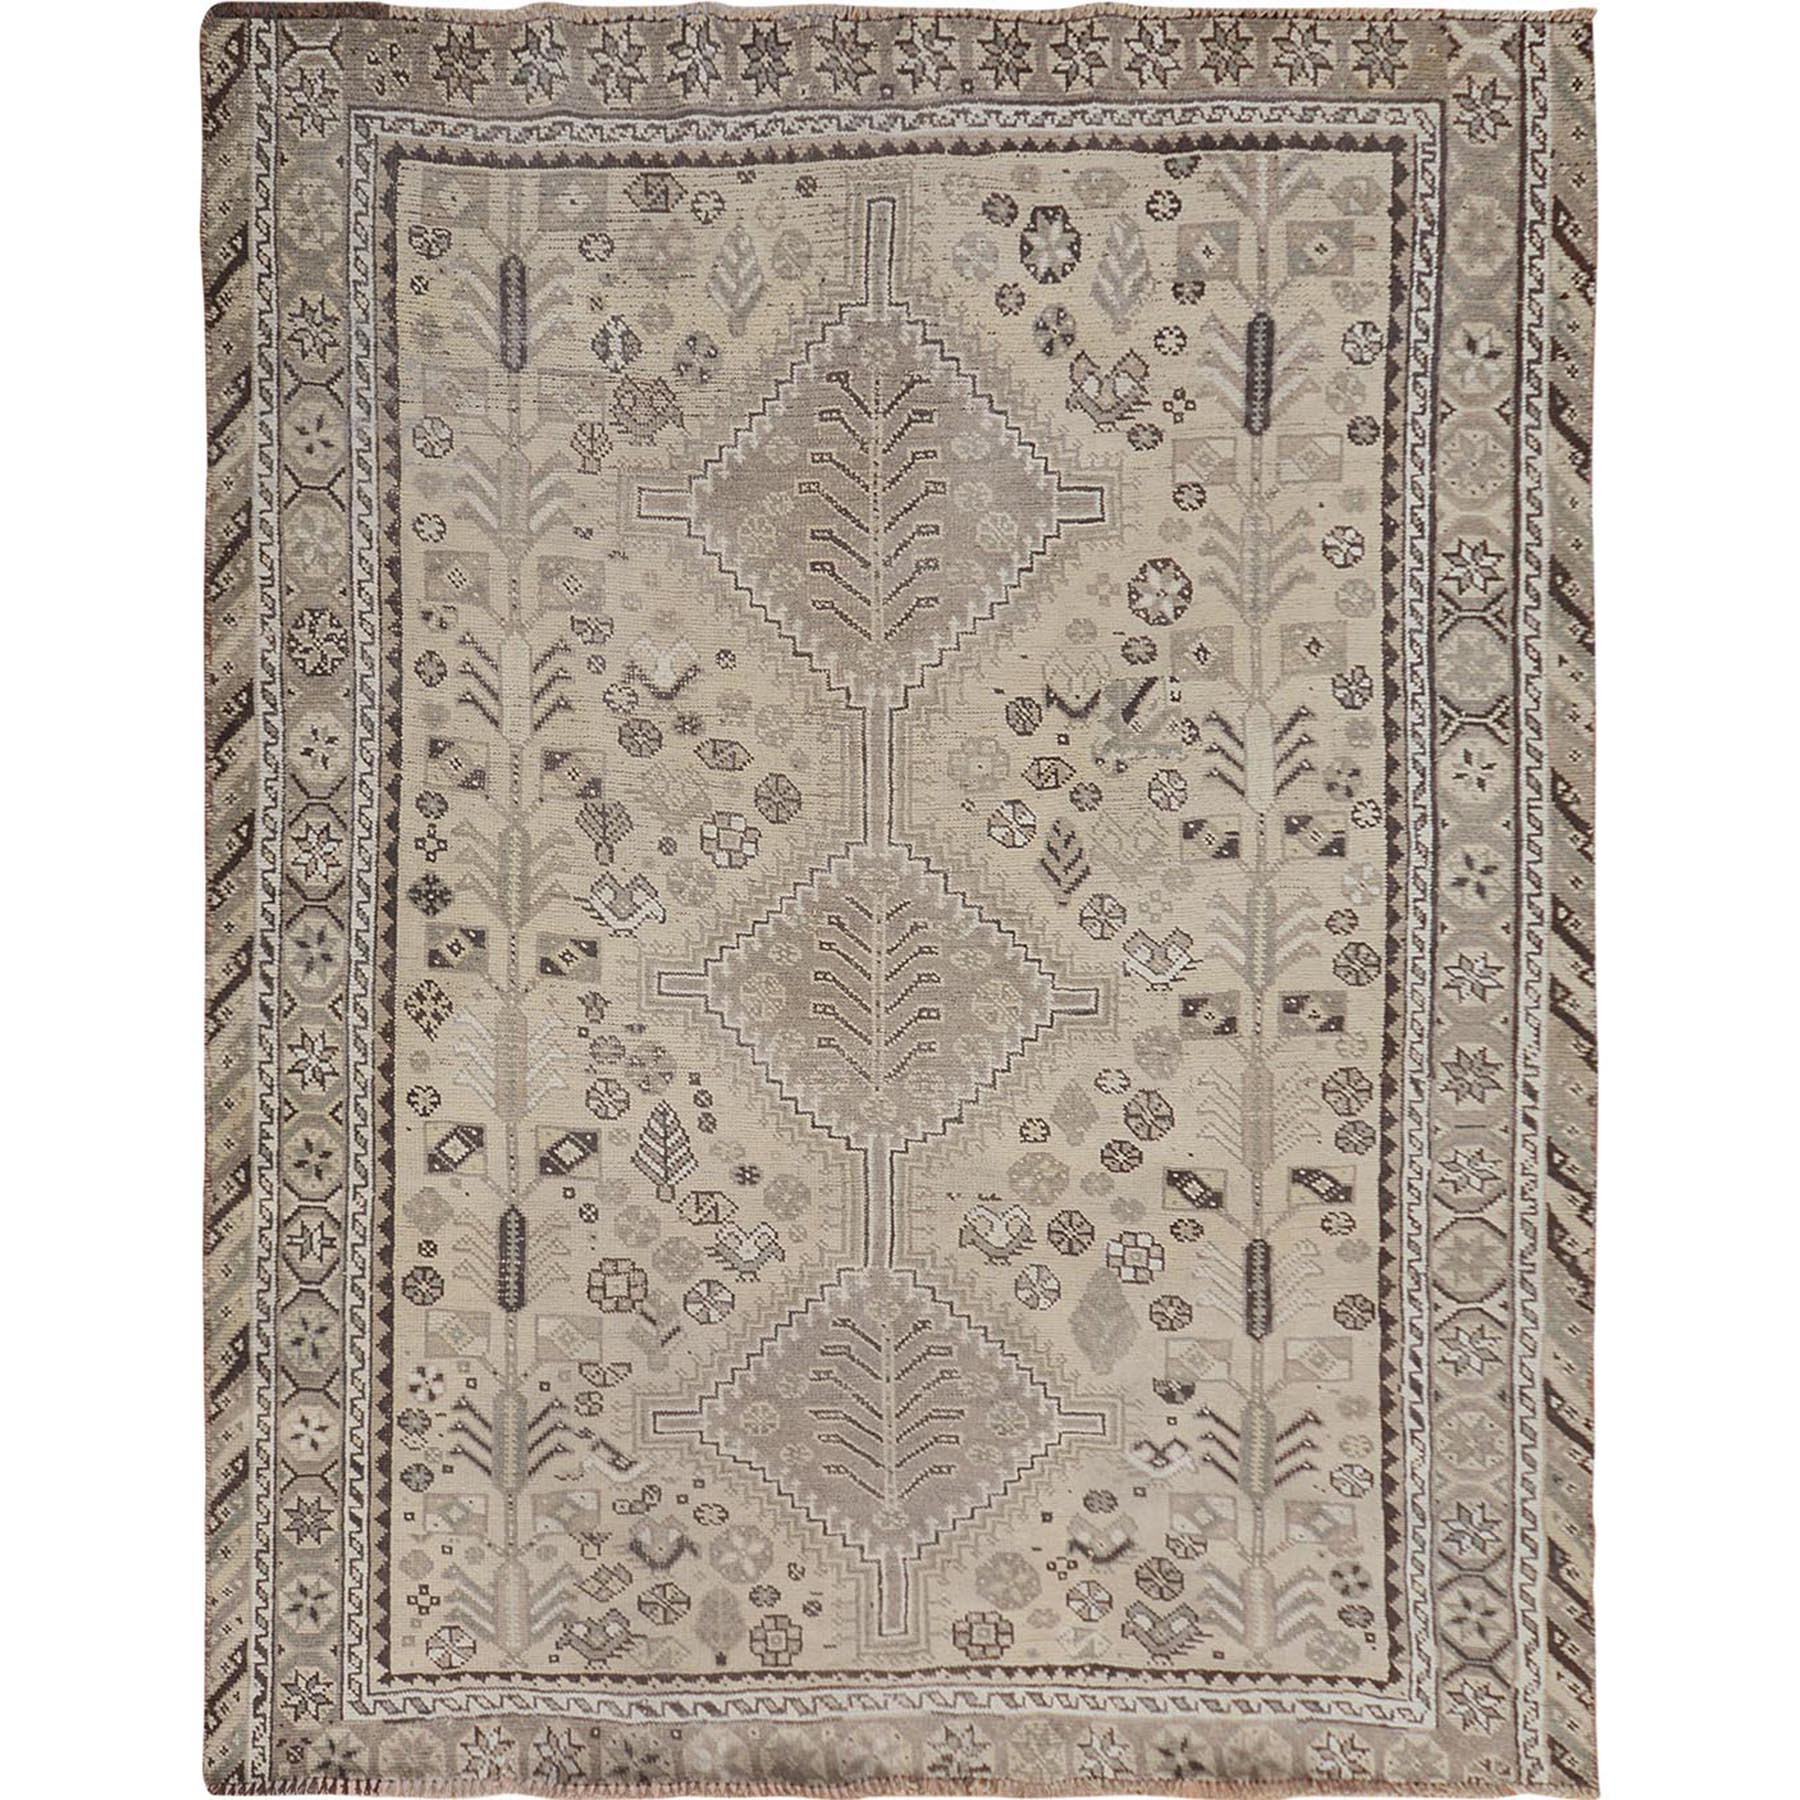 """5'5""""X6'3"""" Natural Colors Worn Down Vintage Persian Qashqai Pure Wool Hand Knotted Oriental Rug moae7b7b"""